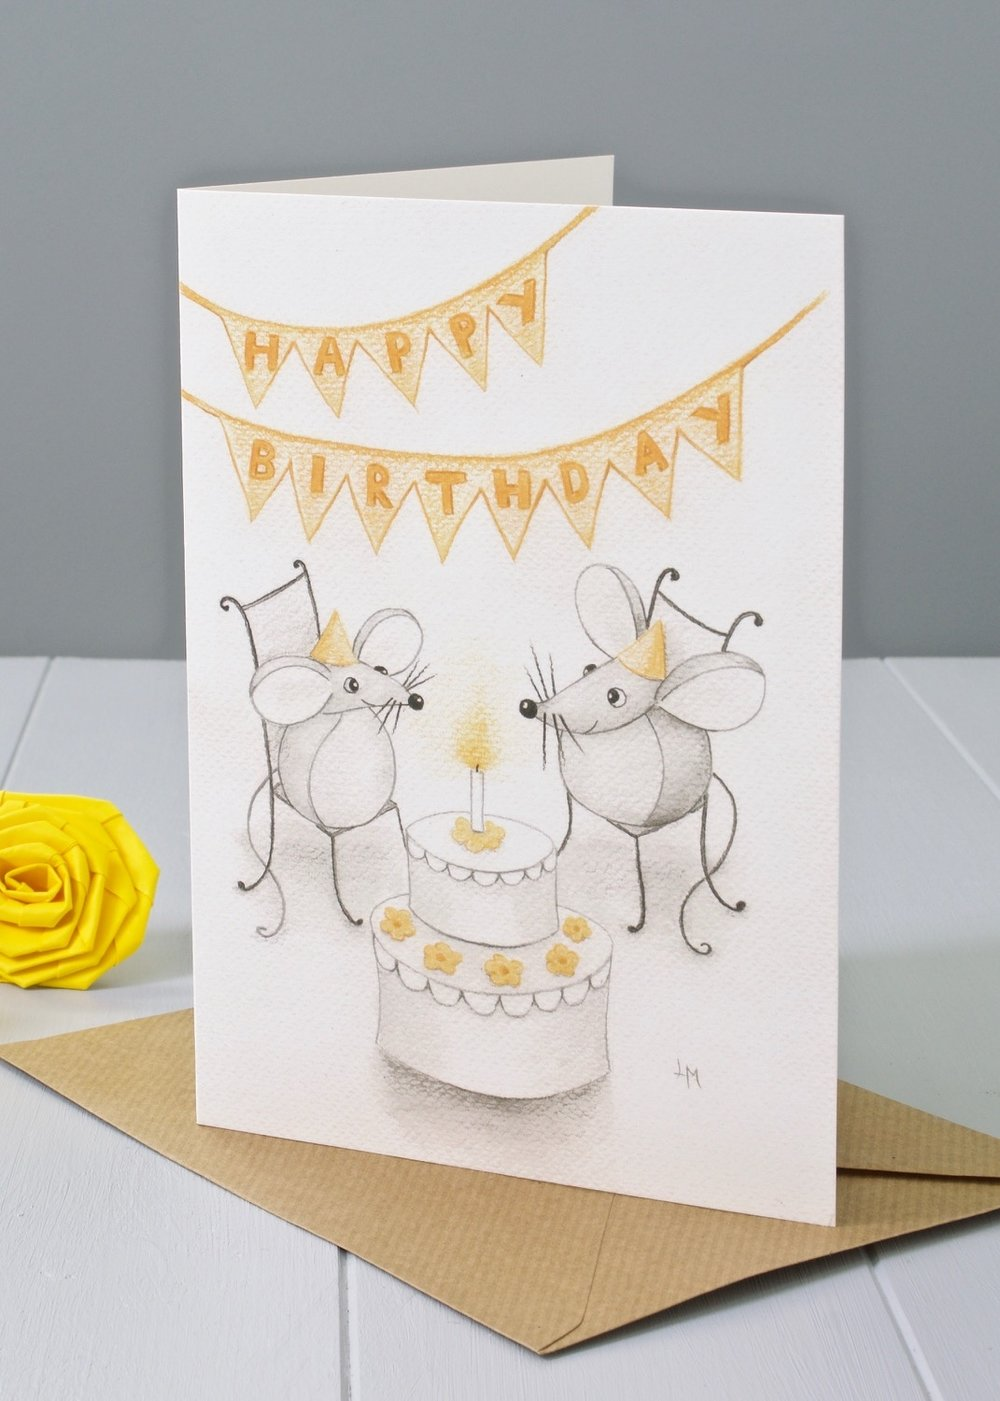 Bilberry Woods mouse character Happy Birthday greeting card by Laura Mirjami   Yellow Rose Design